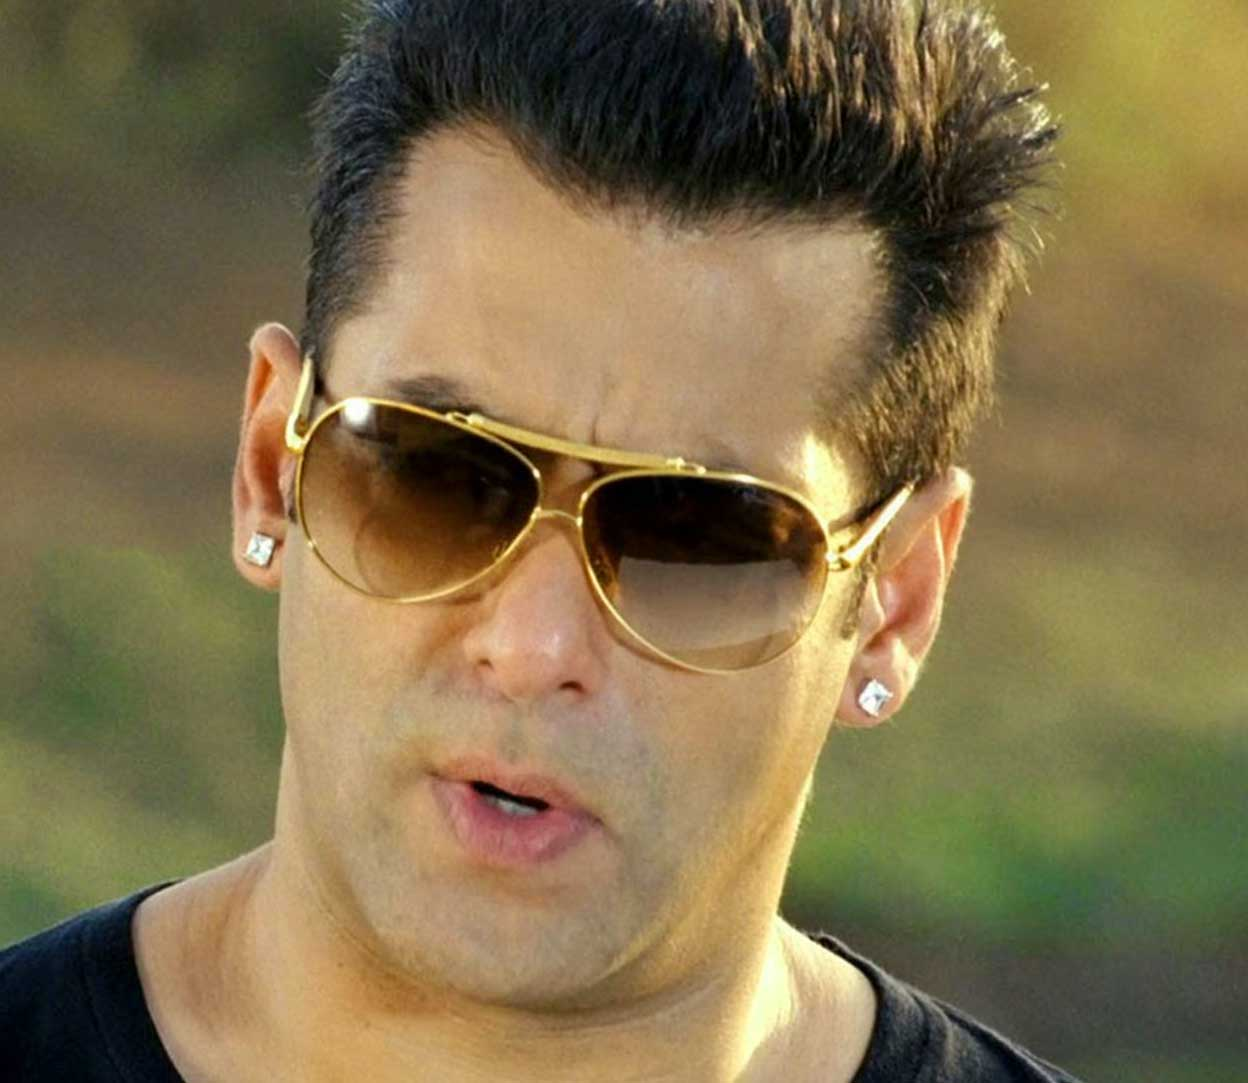 Salman Khan Images HD Free 38